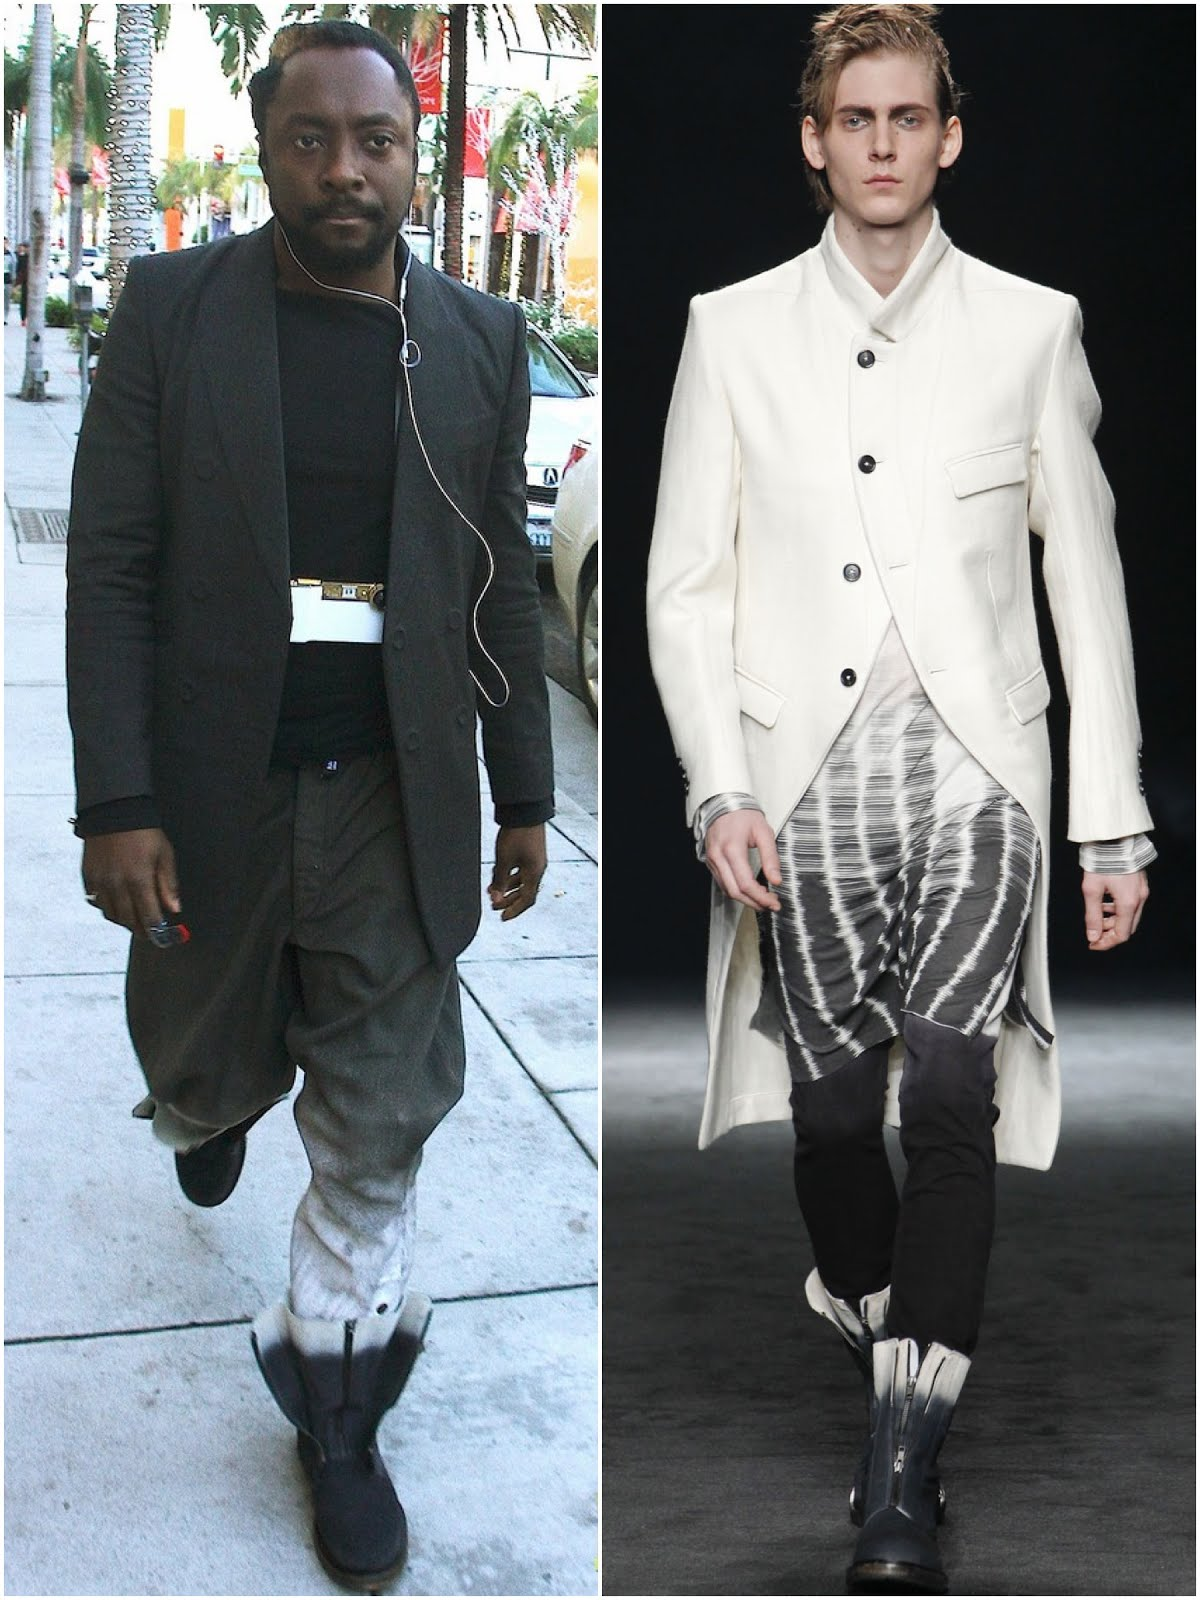 00O00 London Menswear Blog Will.i.am's Ann Demeulemeester boots and I.AM+ iPhone camera